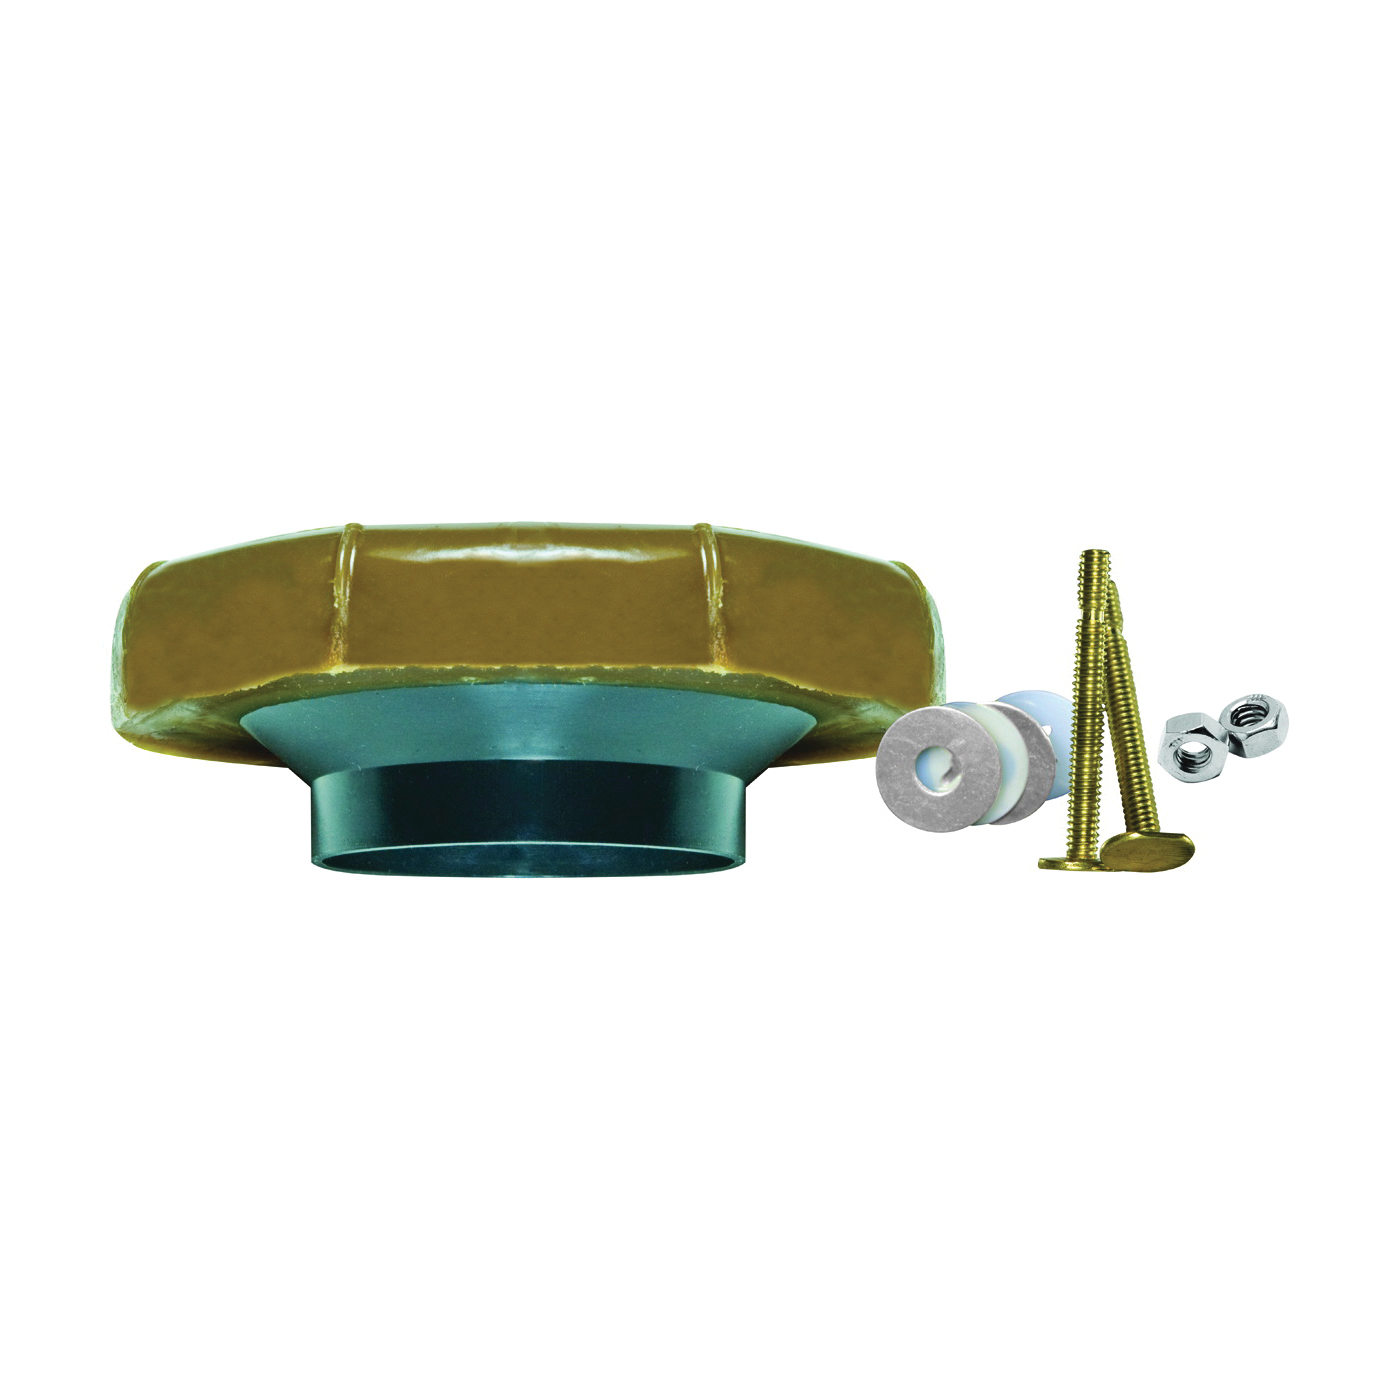 Picture of FLUIDMASTER 7512 Flanged Wax Seal and Bolts, Plastic, For: 3 in and 4 in Waste Lines